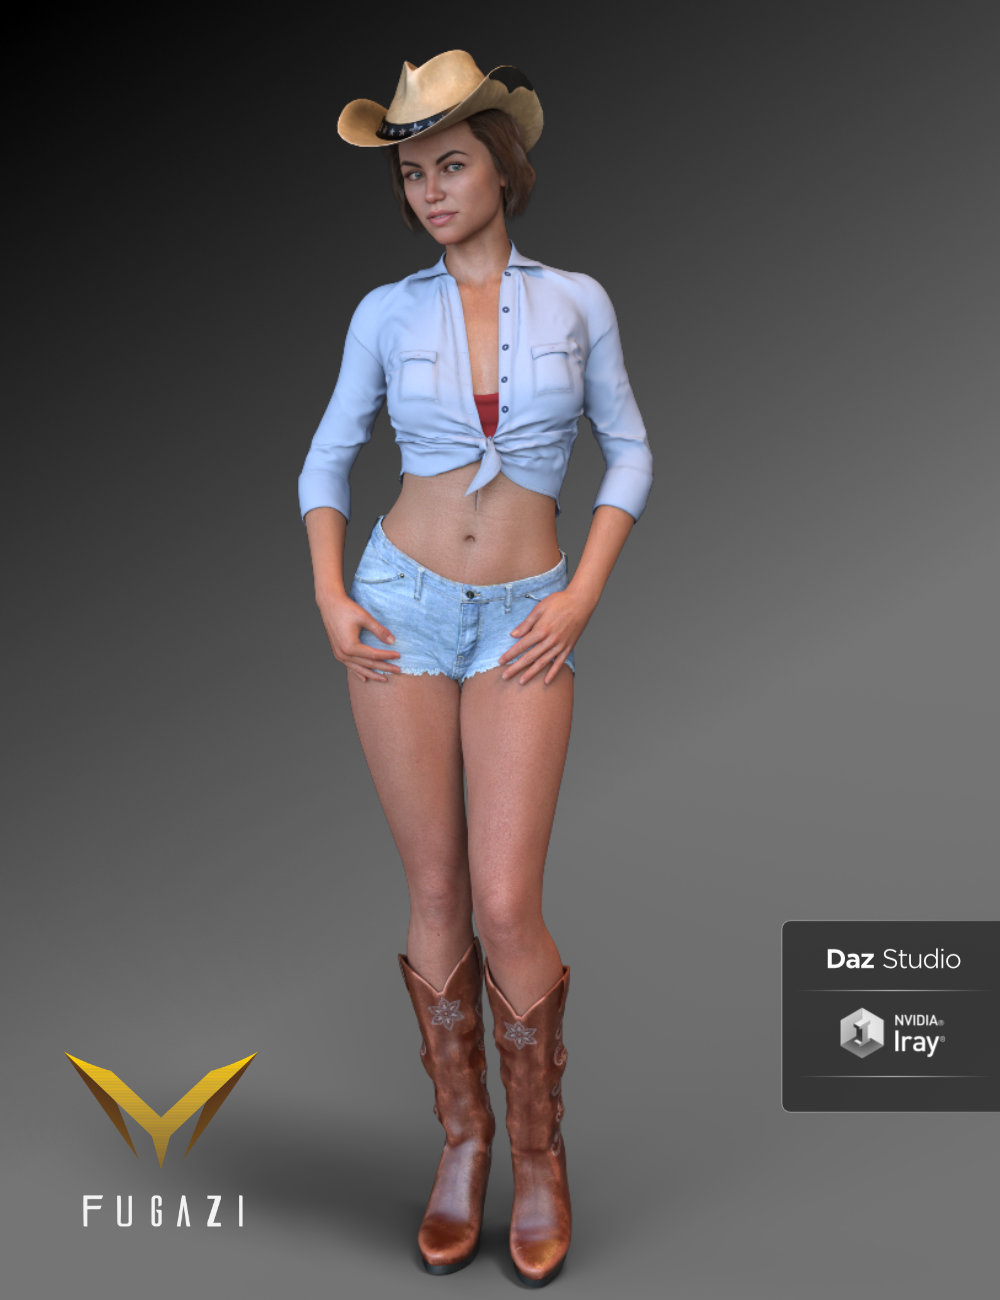 FG Cowgirl Outfit for Genesis 8 Females by: Fugazi1968Ironman, 3D Models by Daz 3D